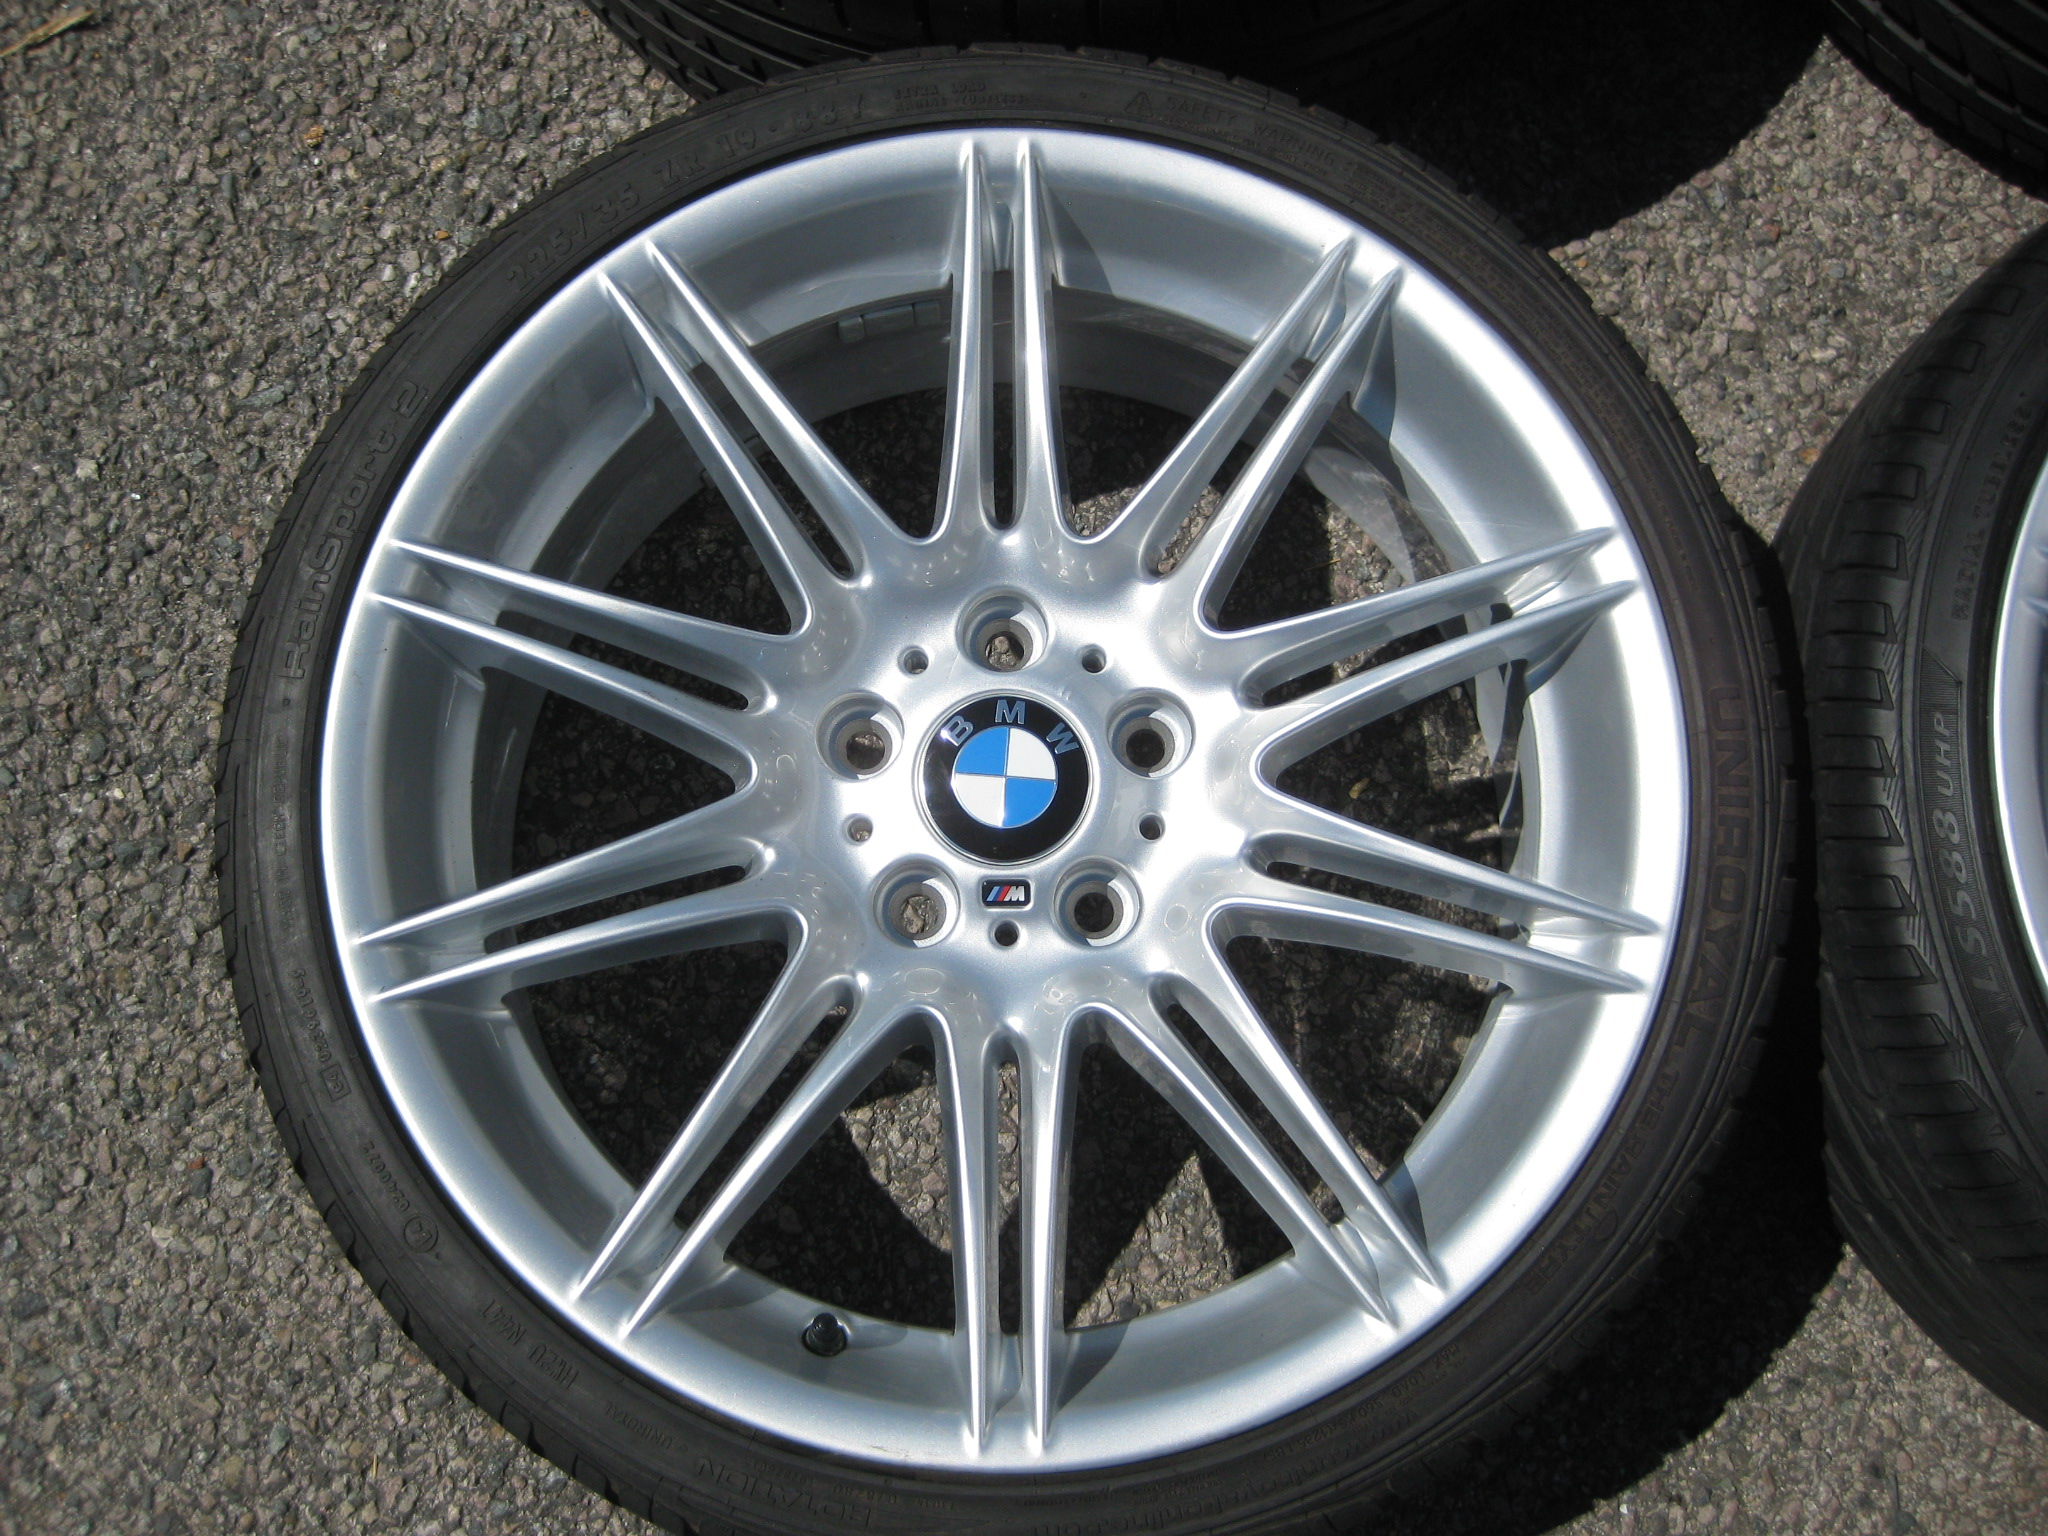 "USED 19"" GENUINE STYLE 225M SPORT E92 ALLOY WHEELS, WIDE REAR, FULLY REFURBED INC GOOD NON RUNFLAT TYRES"